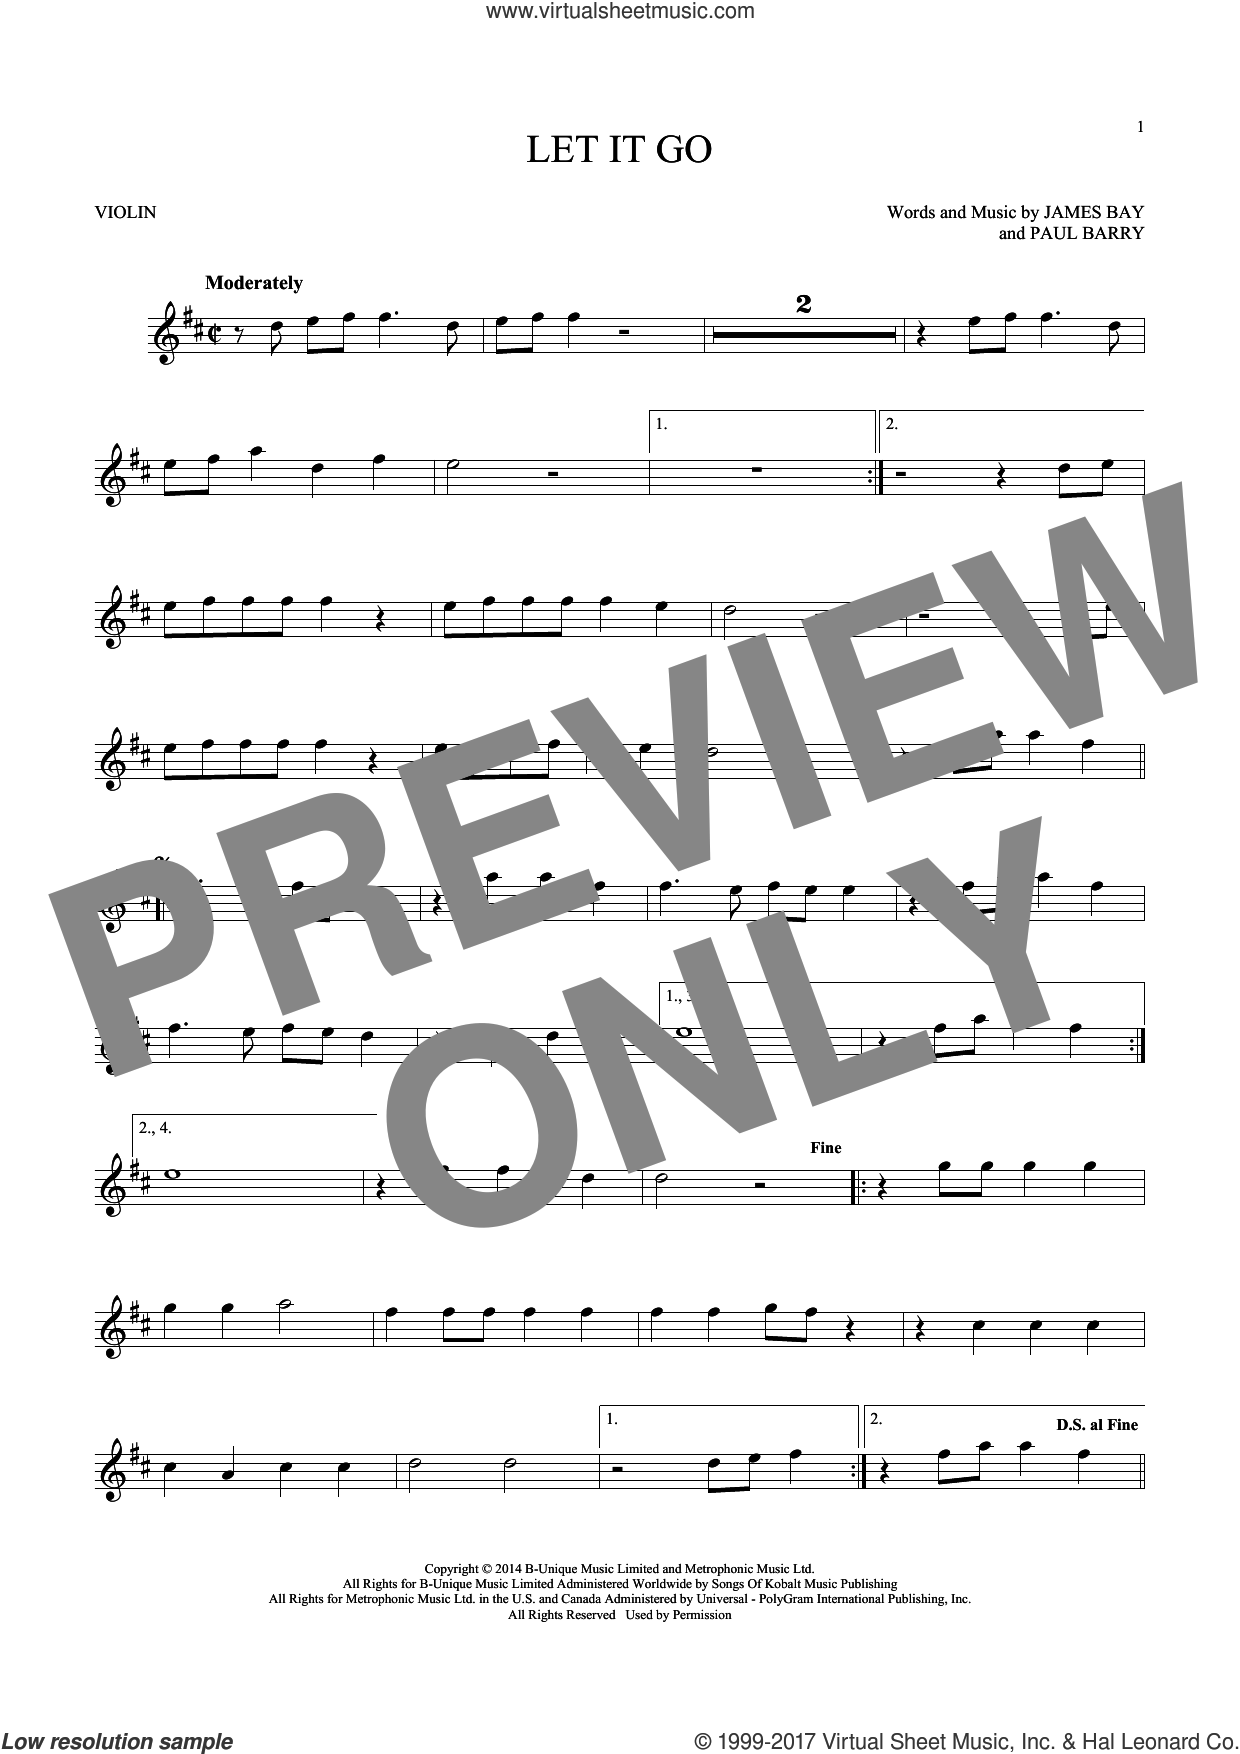 Let It Go sheet music for violin solo by James Bay and Paul Barry, intermediate skill level